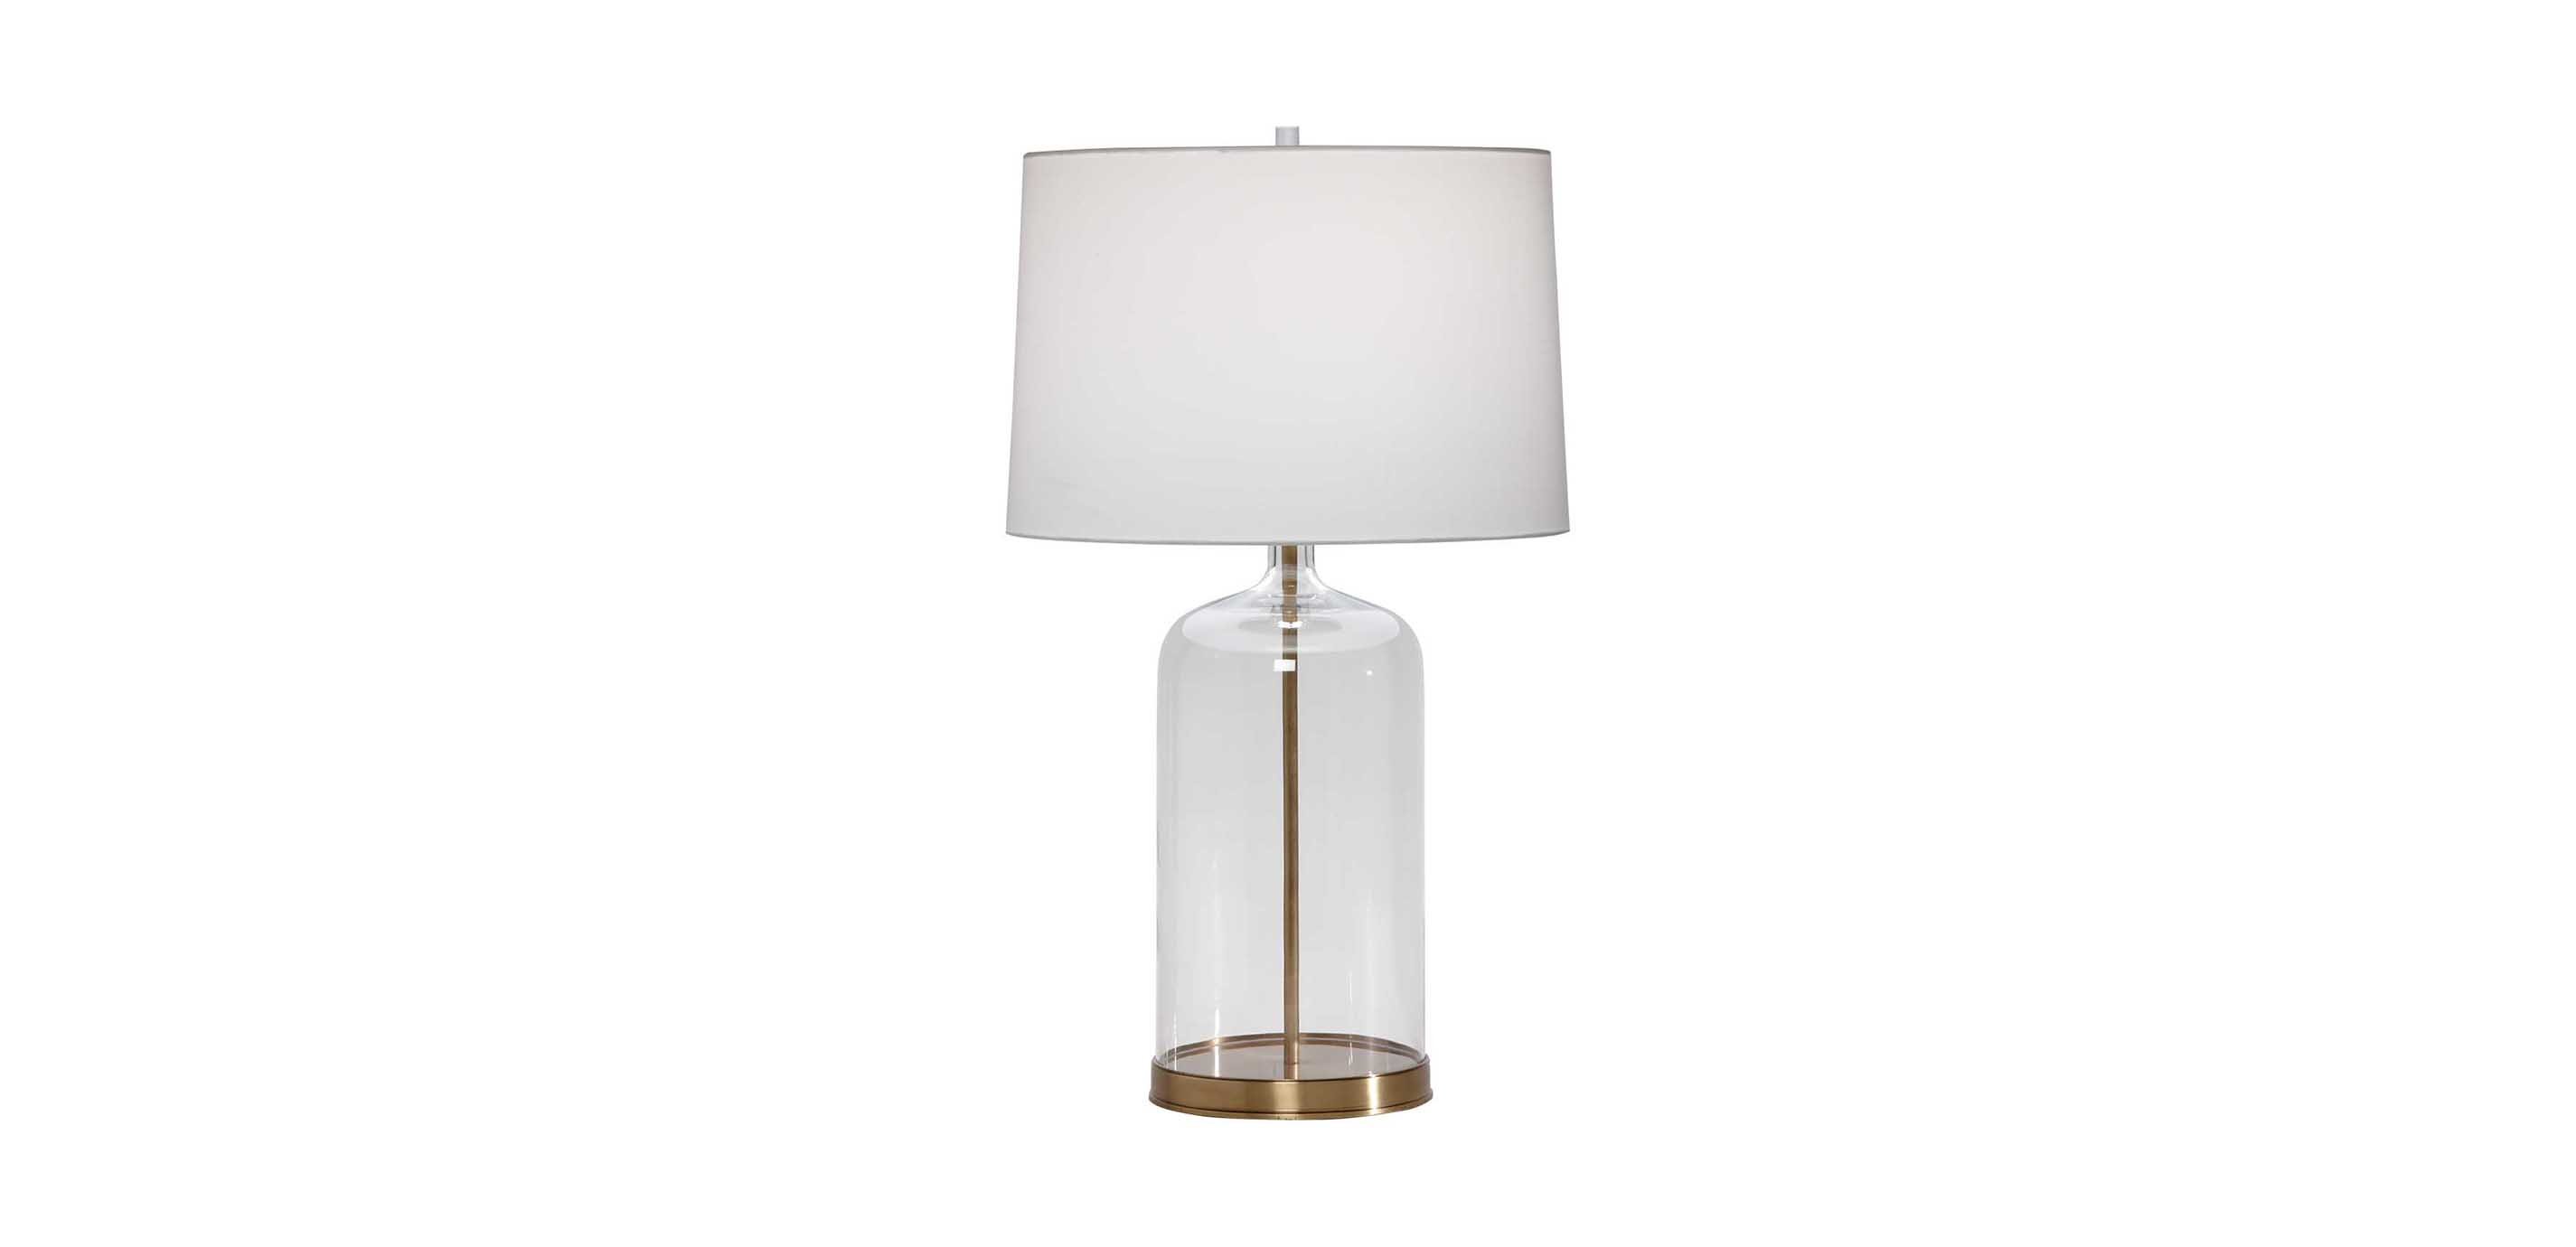 images kiera table lamp largegray